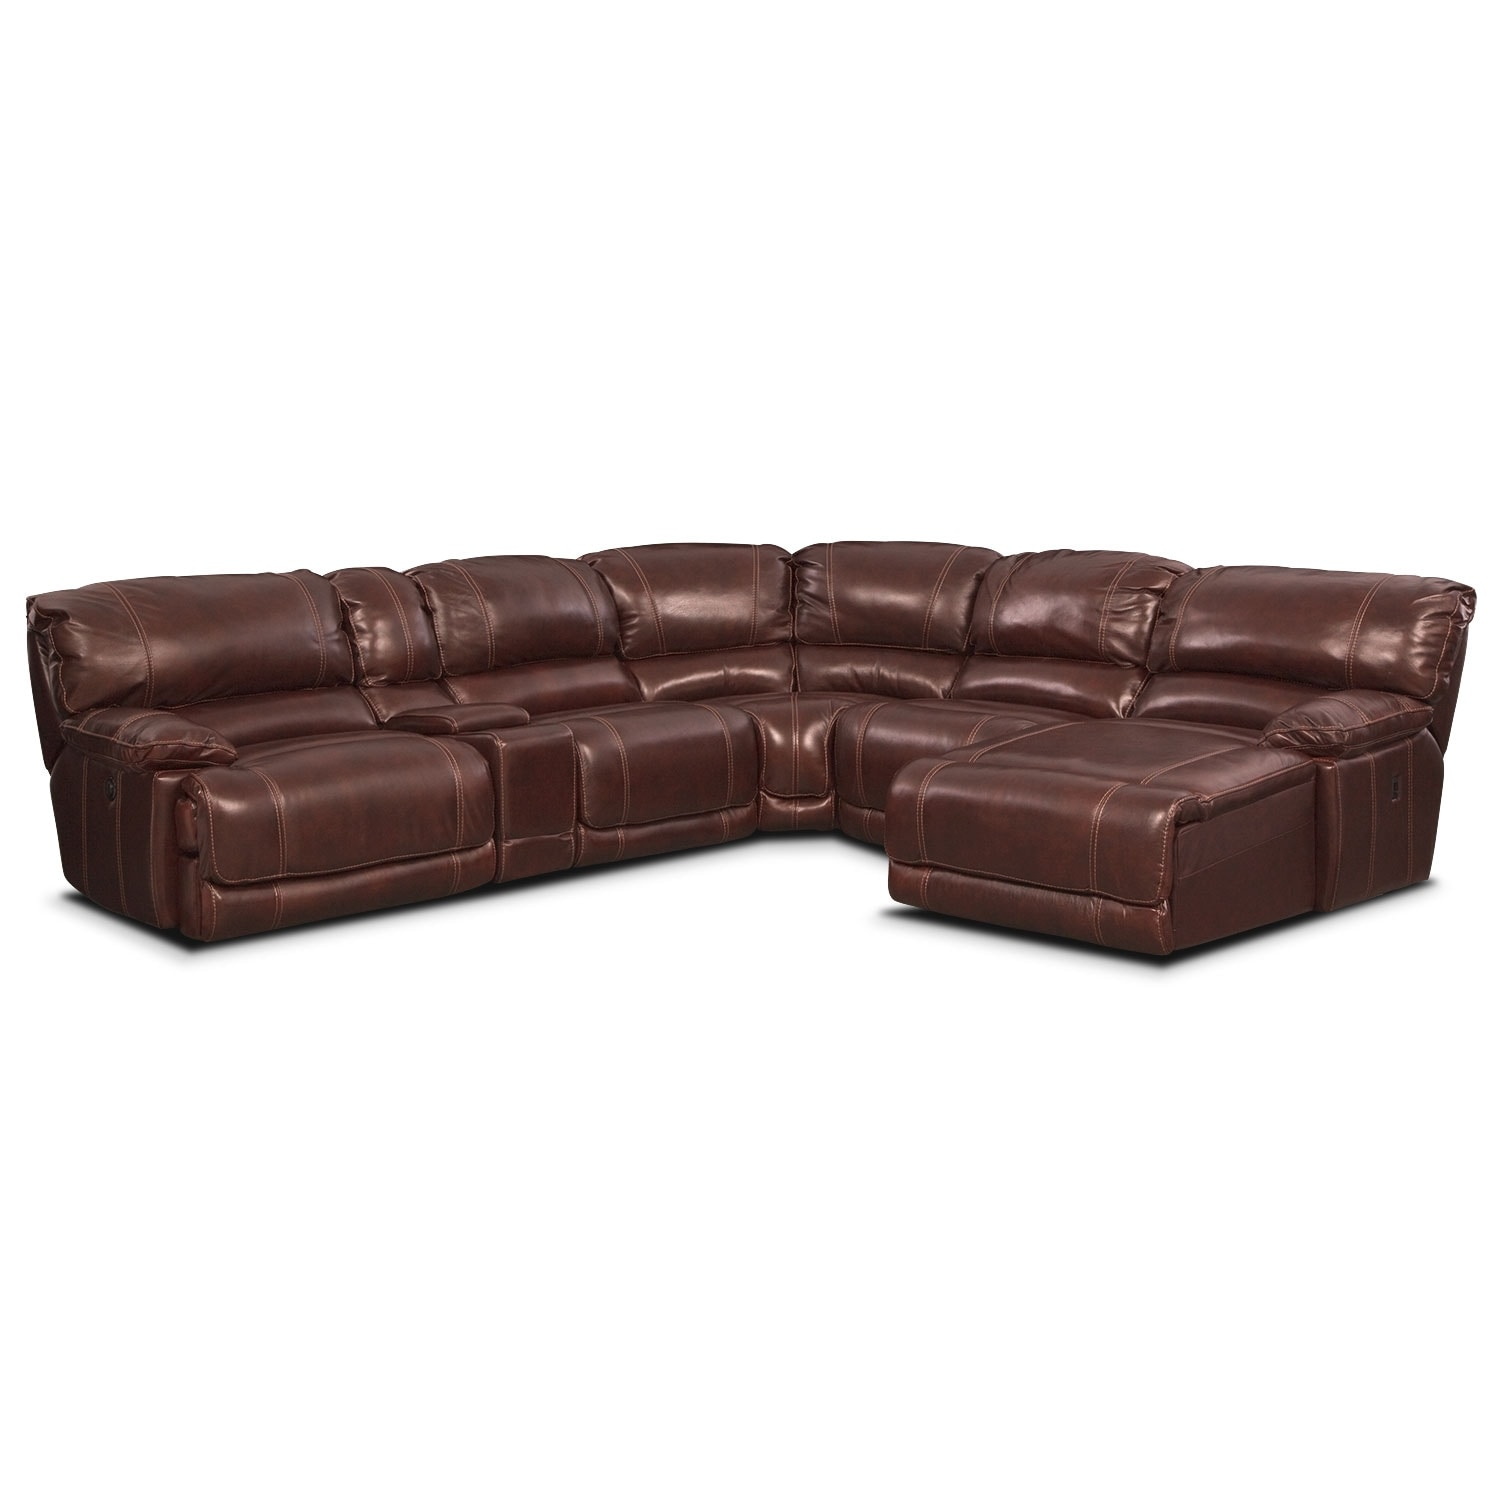 Midori 6 Pc Leather Power Reclining Sectional Sofa: St. Malo 6-Piece Power Reclining Sectional With Right